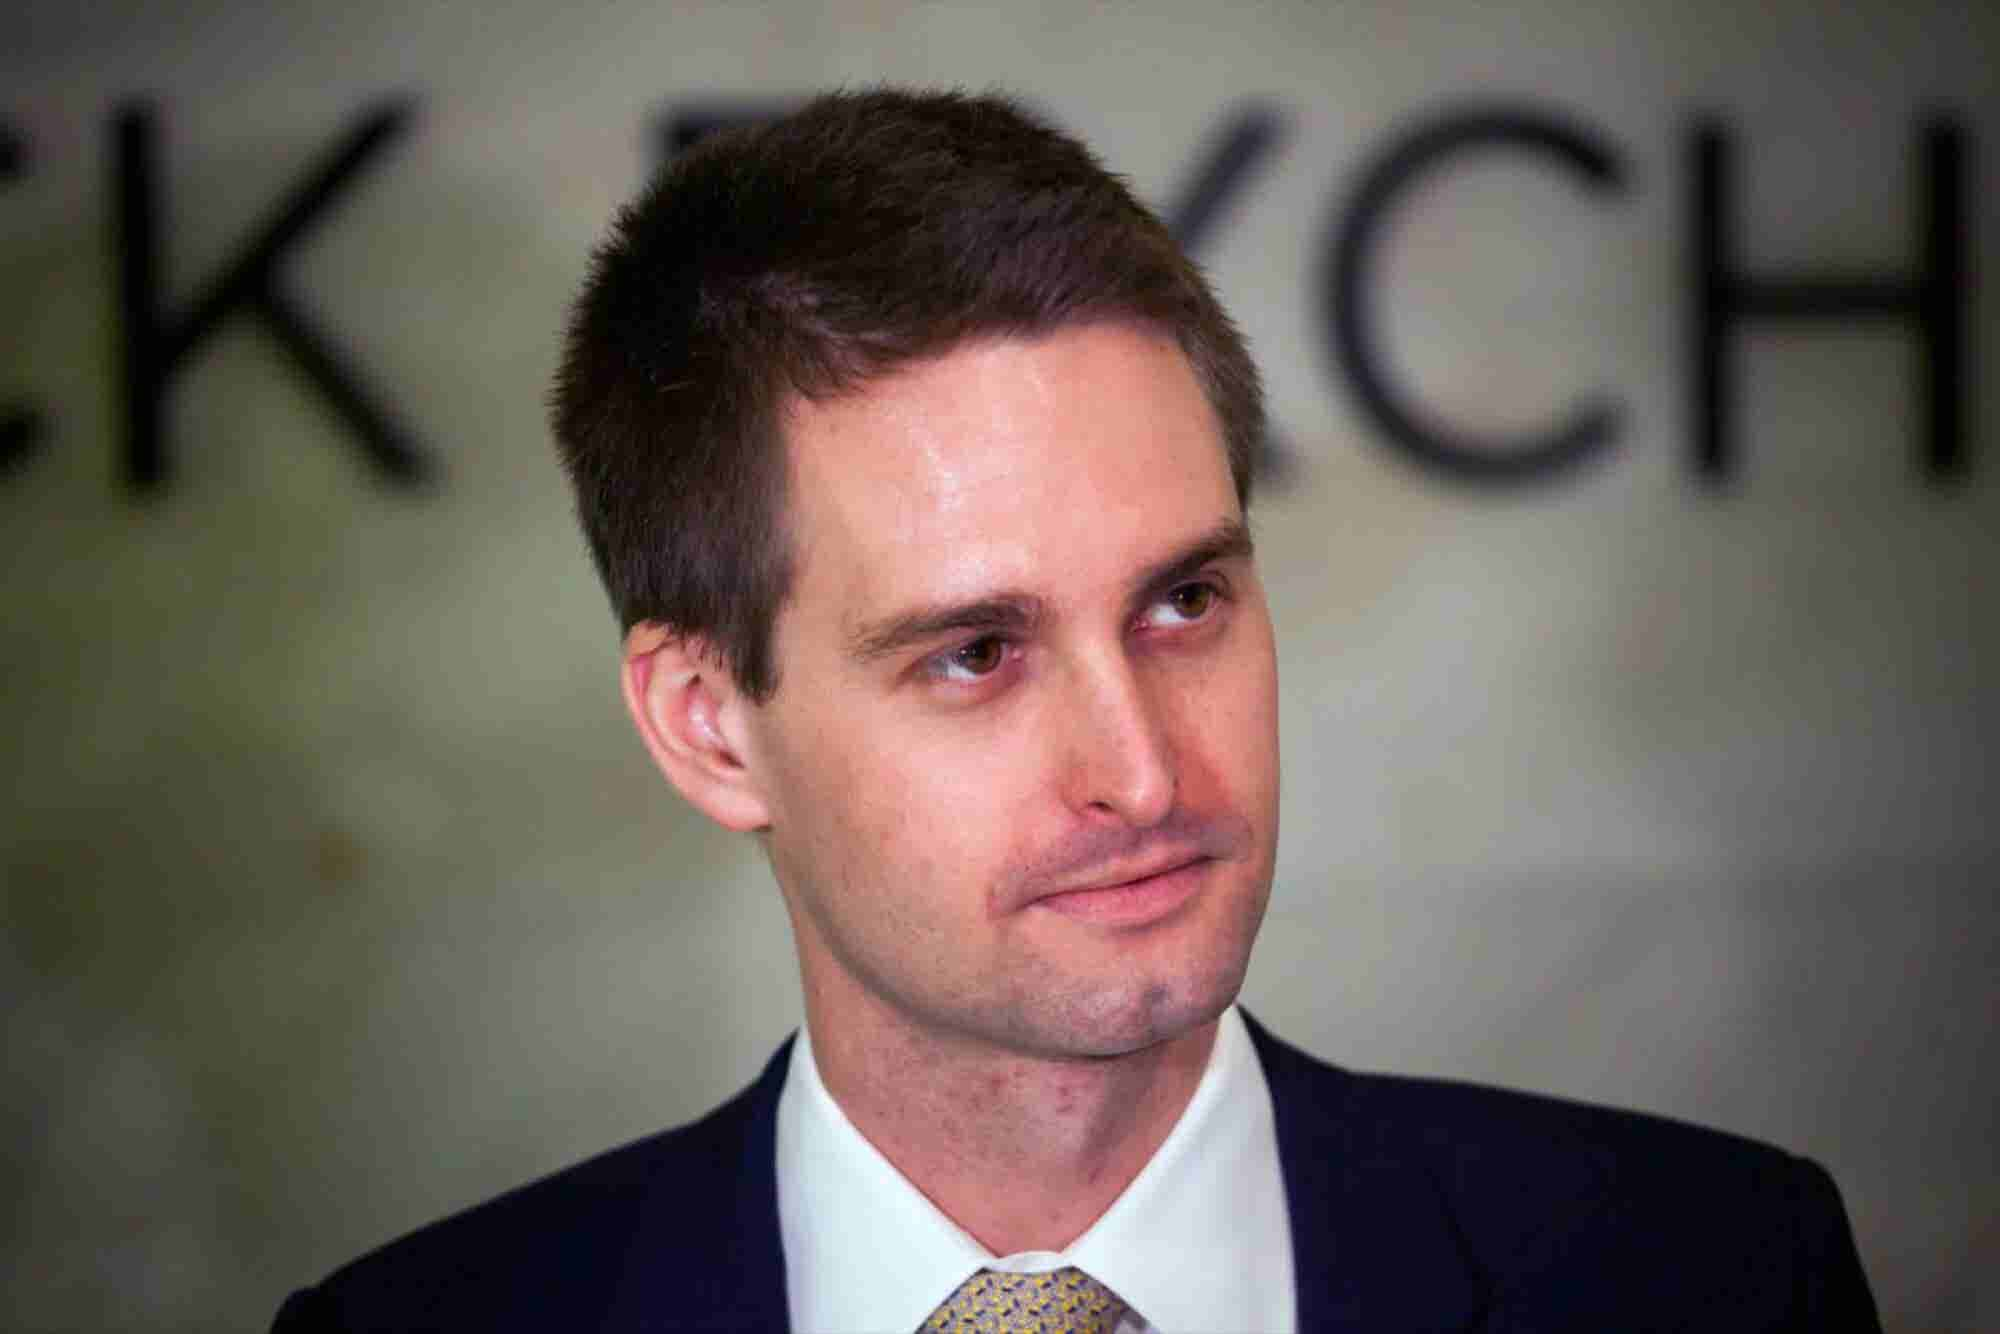 Snapchat CEO Throws Shade at Facebook's Poor Data Practices